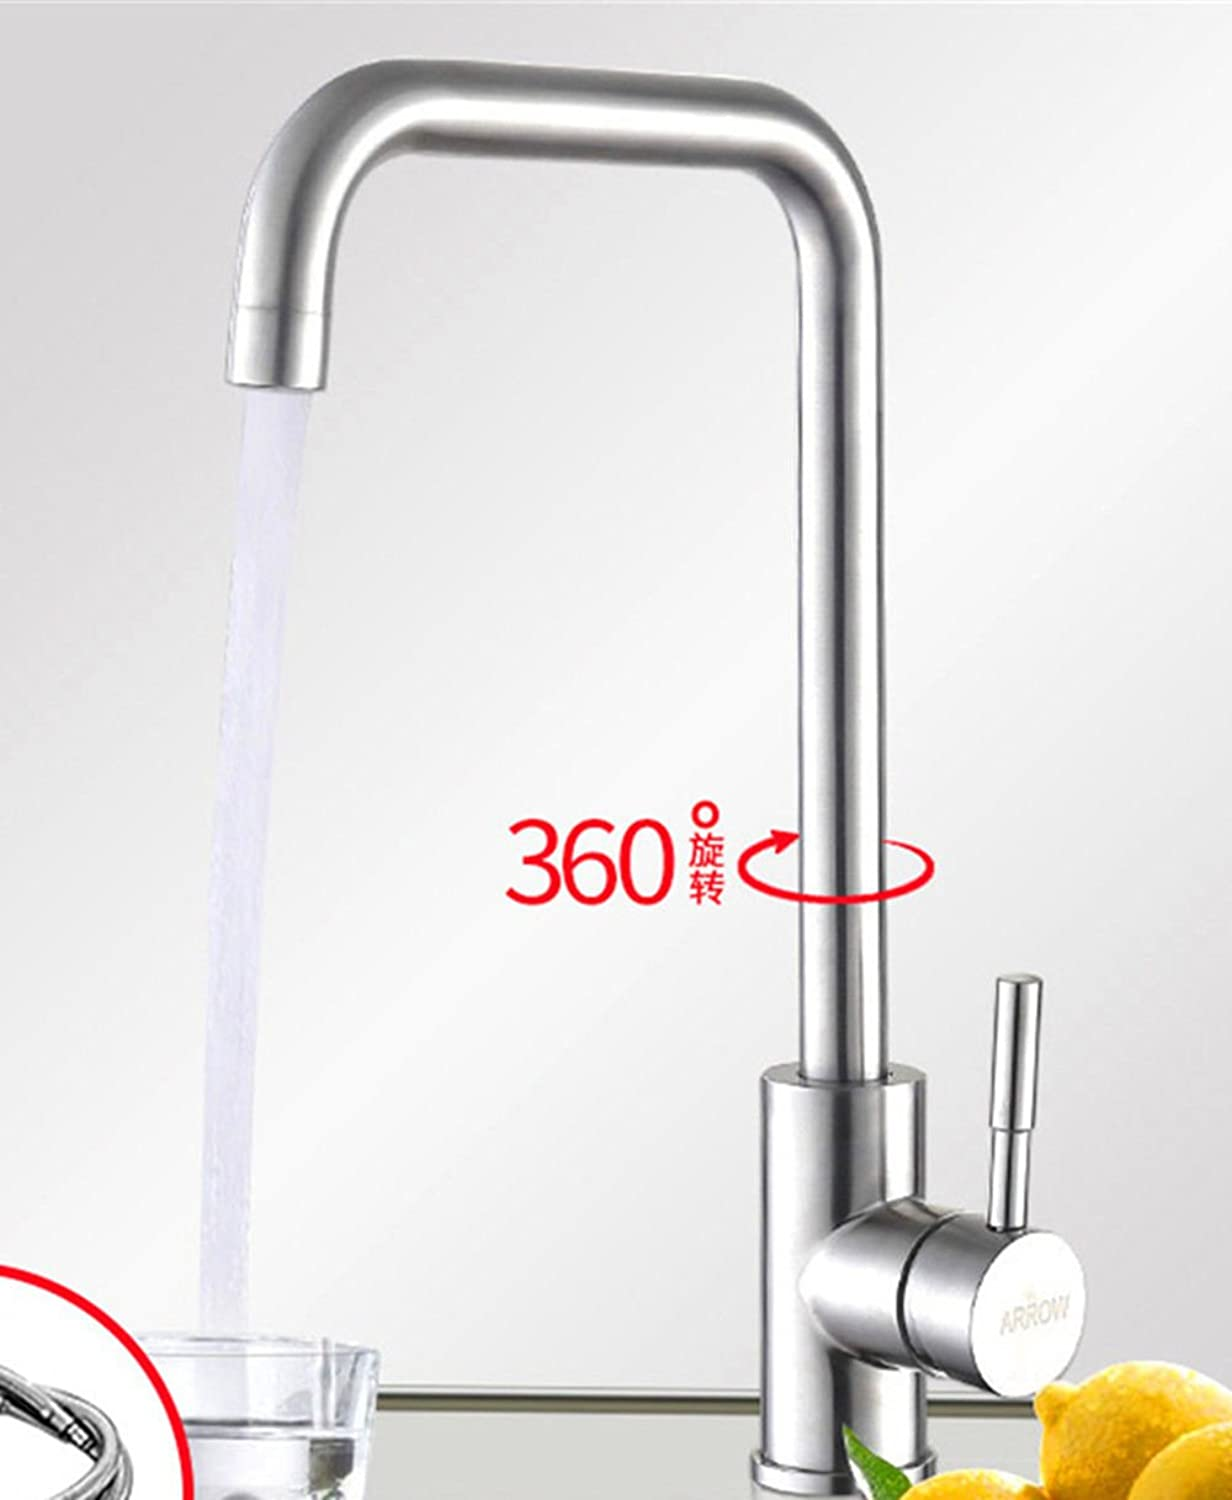 Commercial Single Lever Pull Down Kitchen Sink Faucet Brass Constructed Polished Stainless Steel Kitchen Faucet Can Be redated Hot and Cold Lead-Free Kitchen Sink Faucet